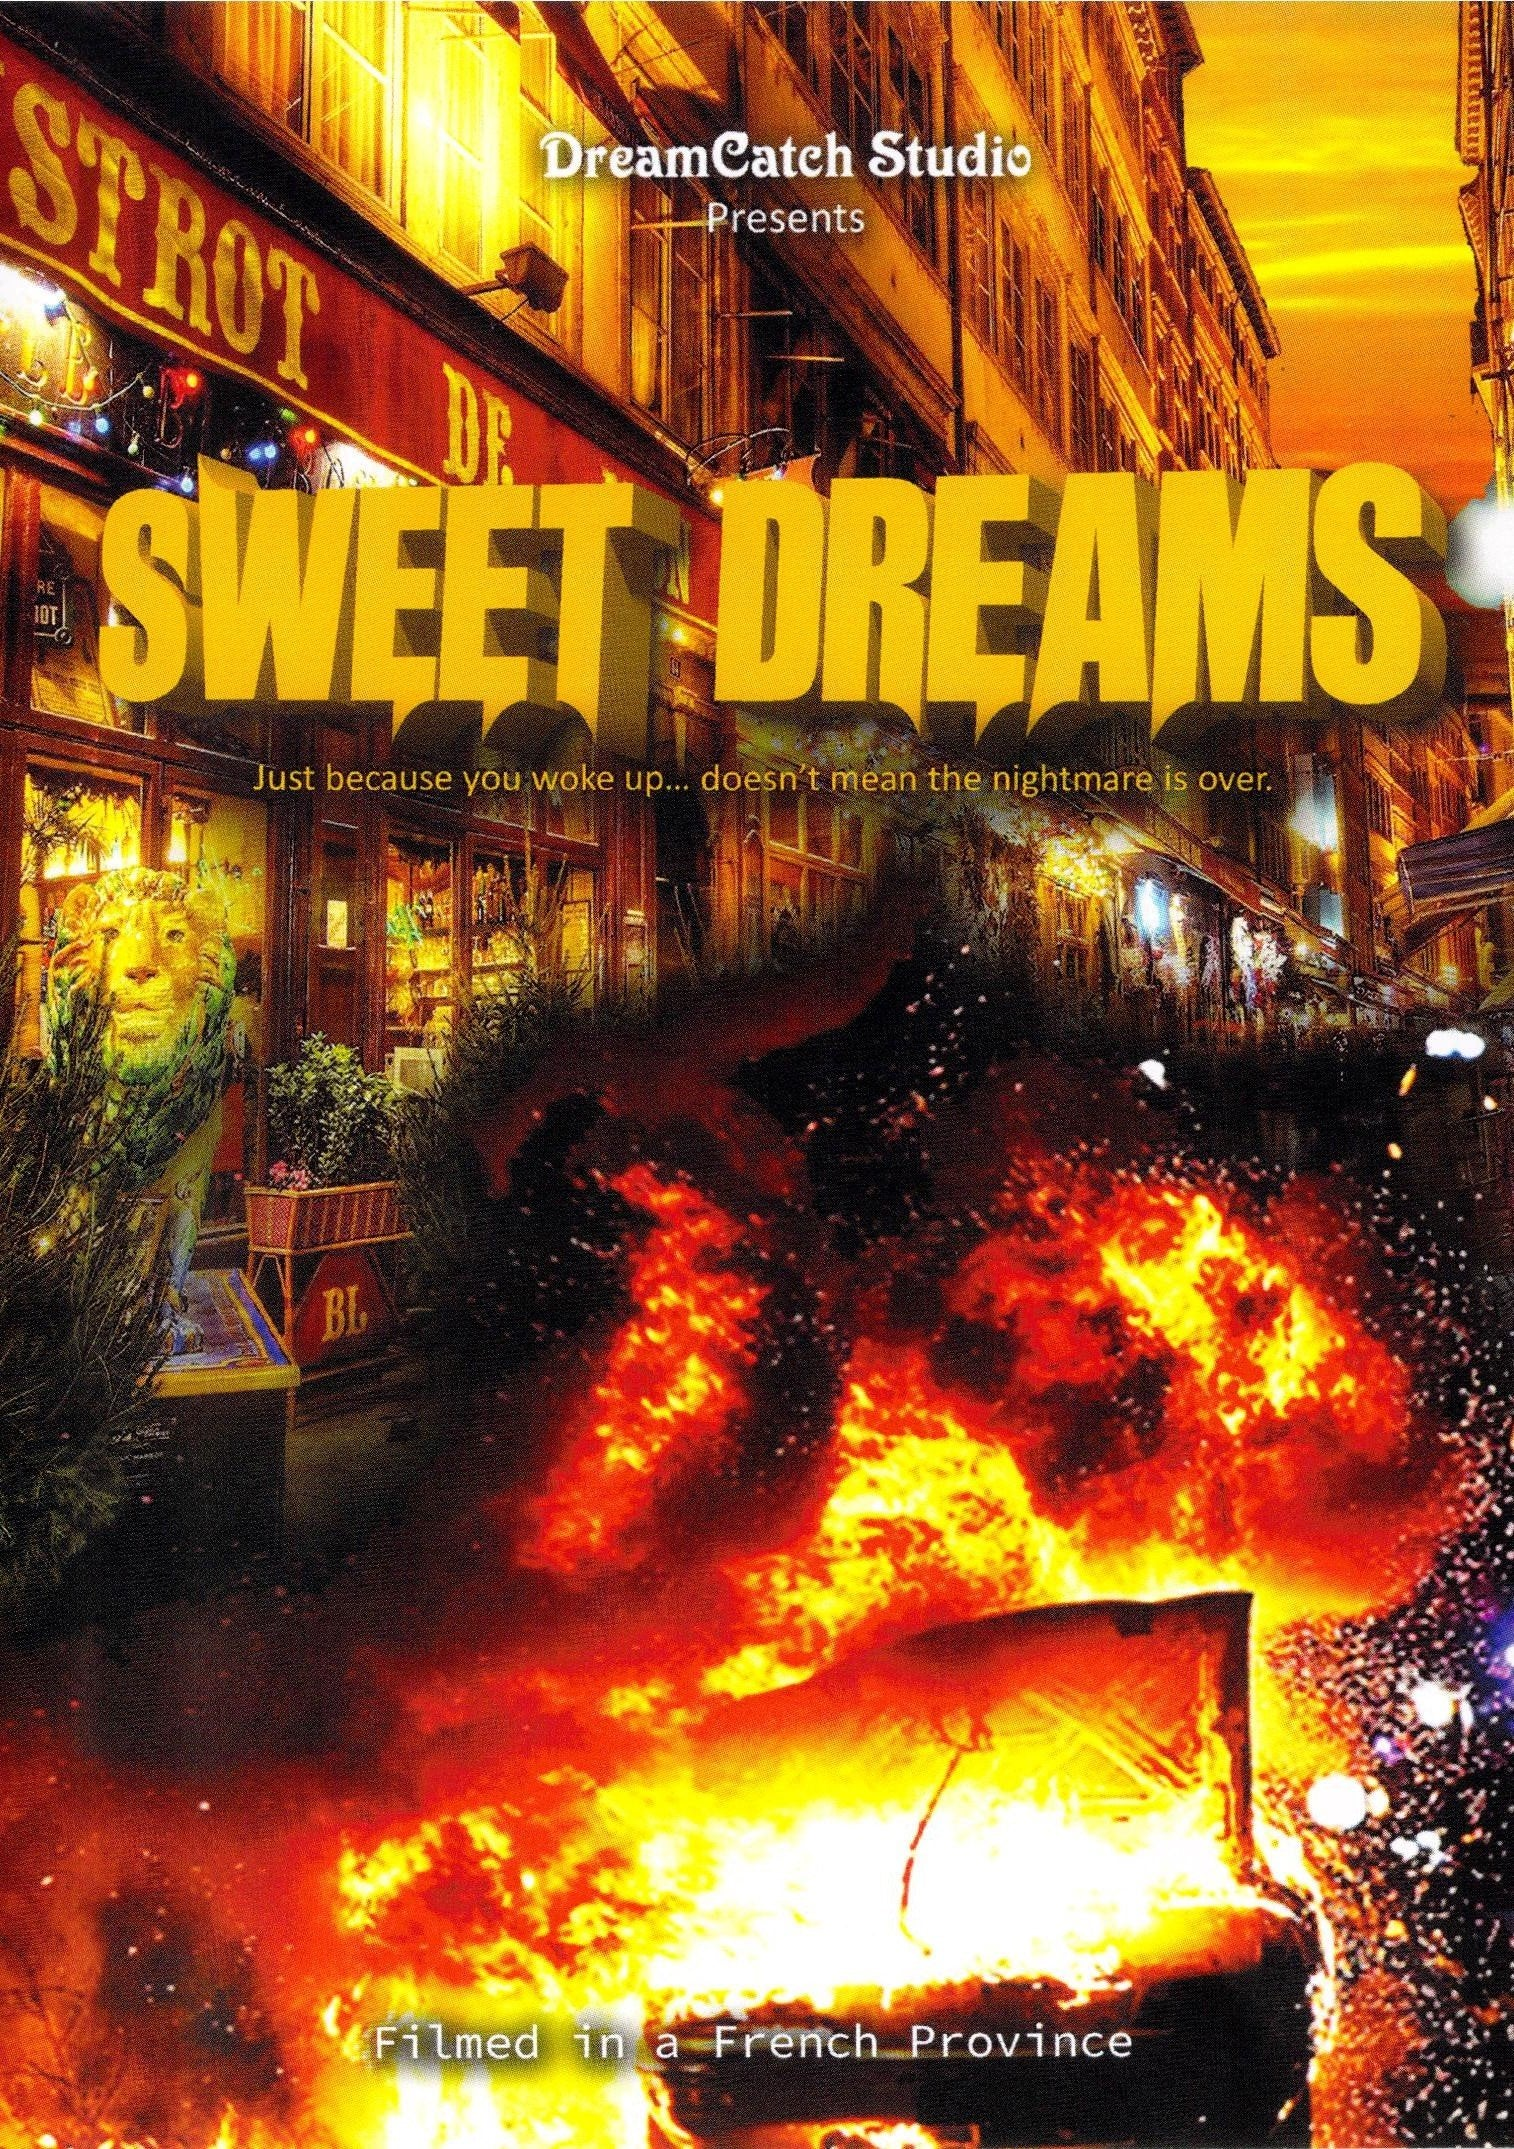 Dream Catch Studio - Sweet Dreams (Video)